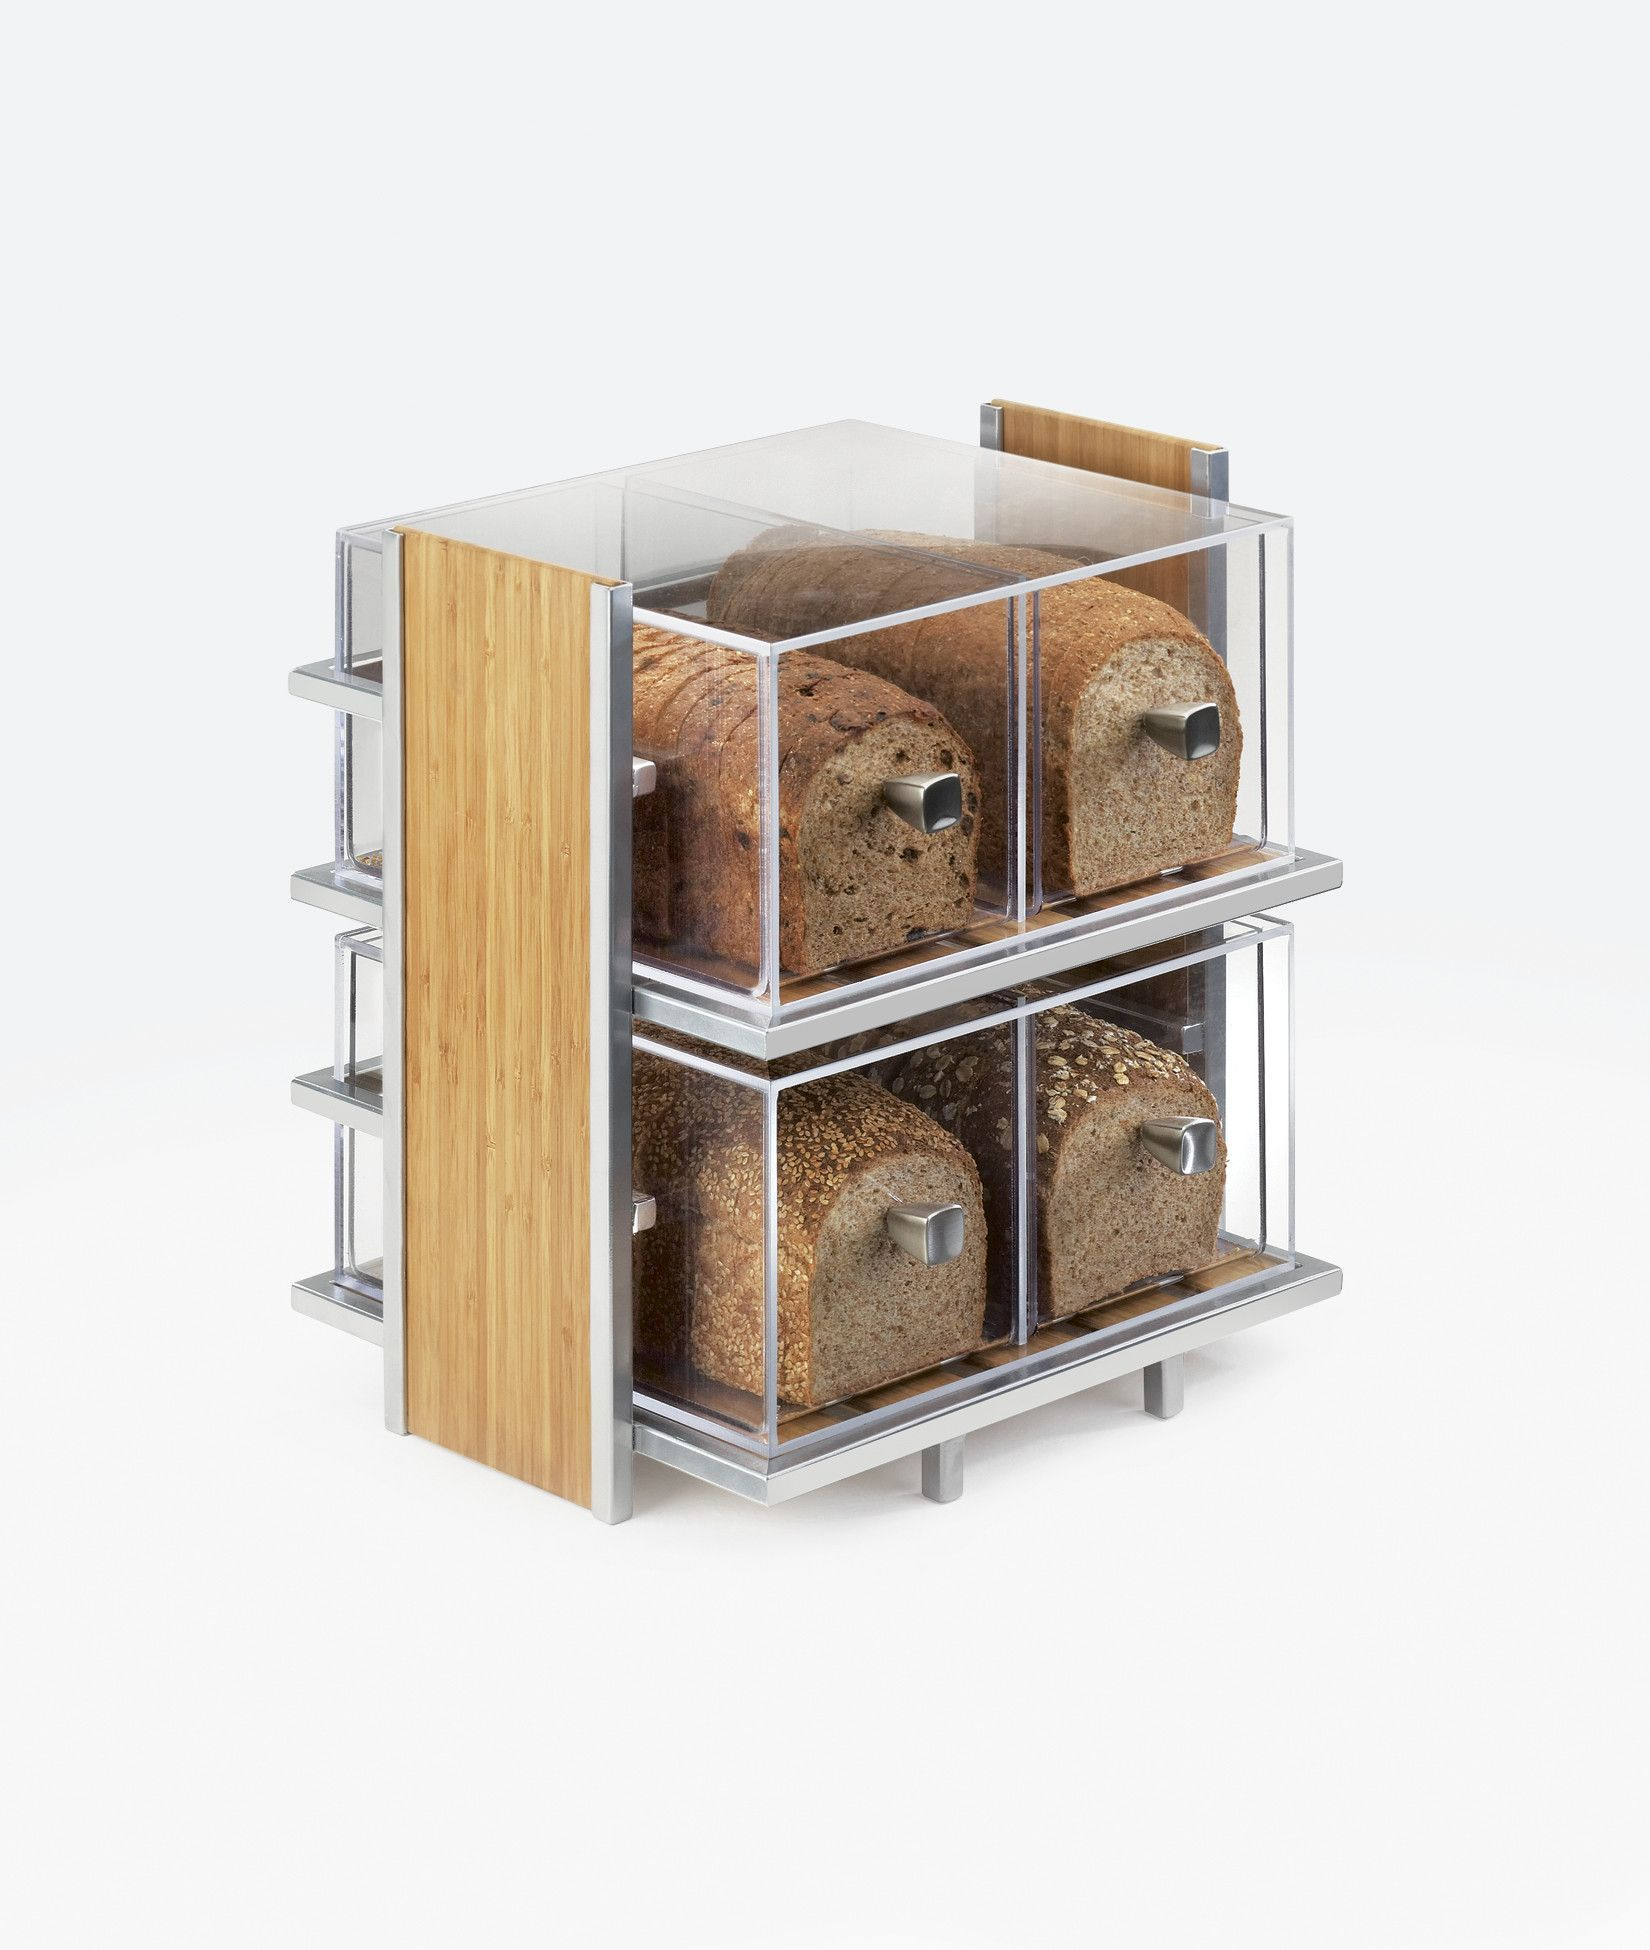 Tin bread box drawer insert - Features Two Each 2 Drawer Bread Boxes Included Eco Modern Collection